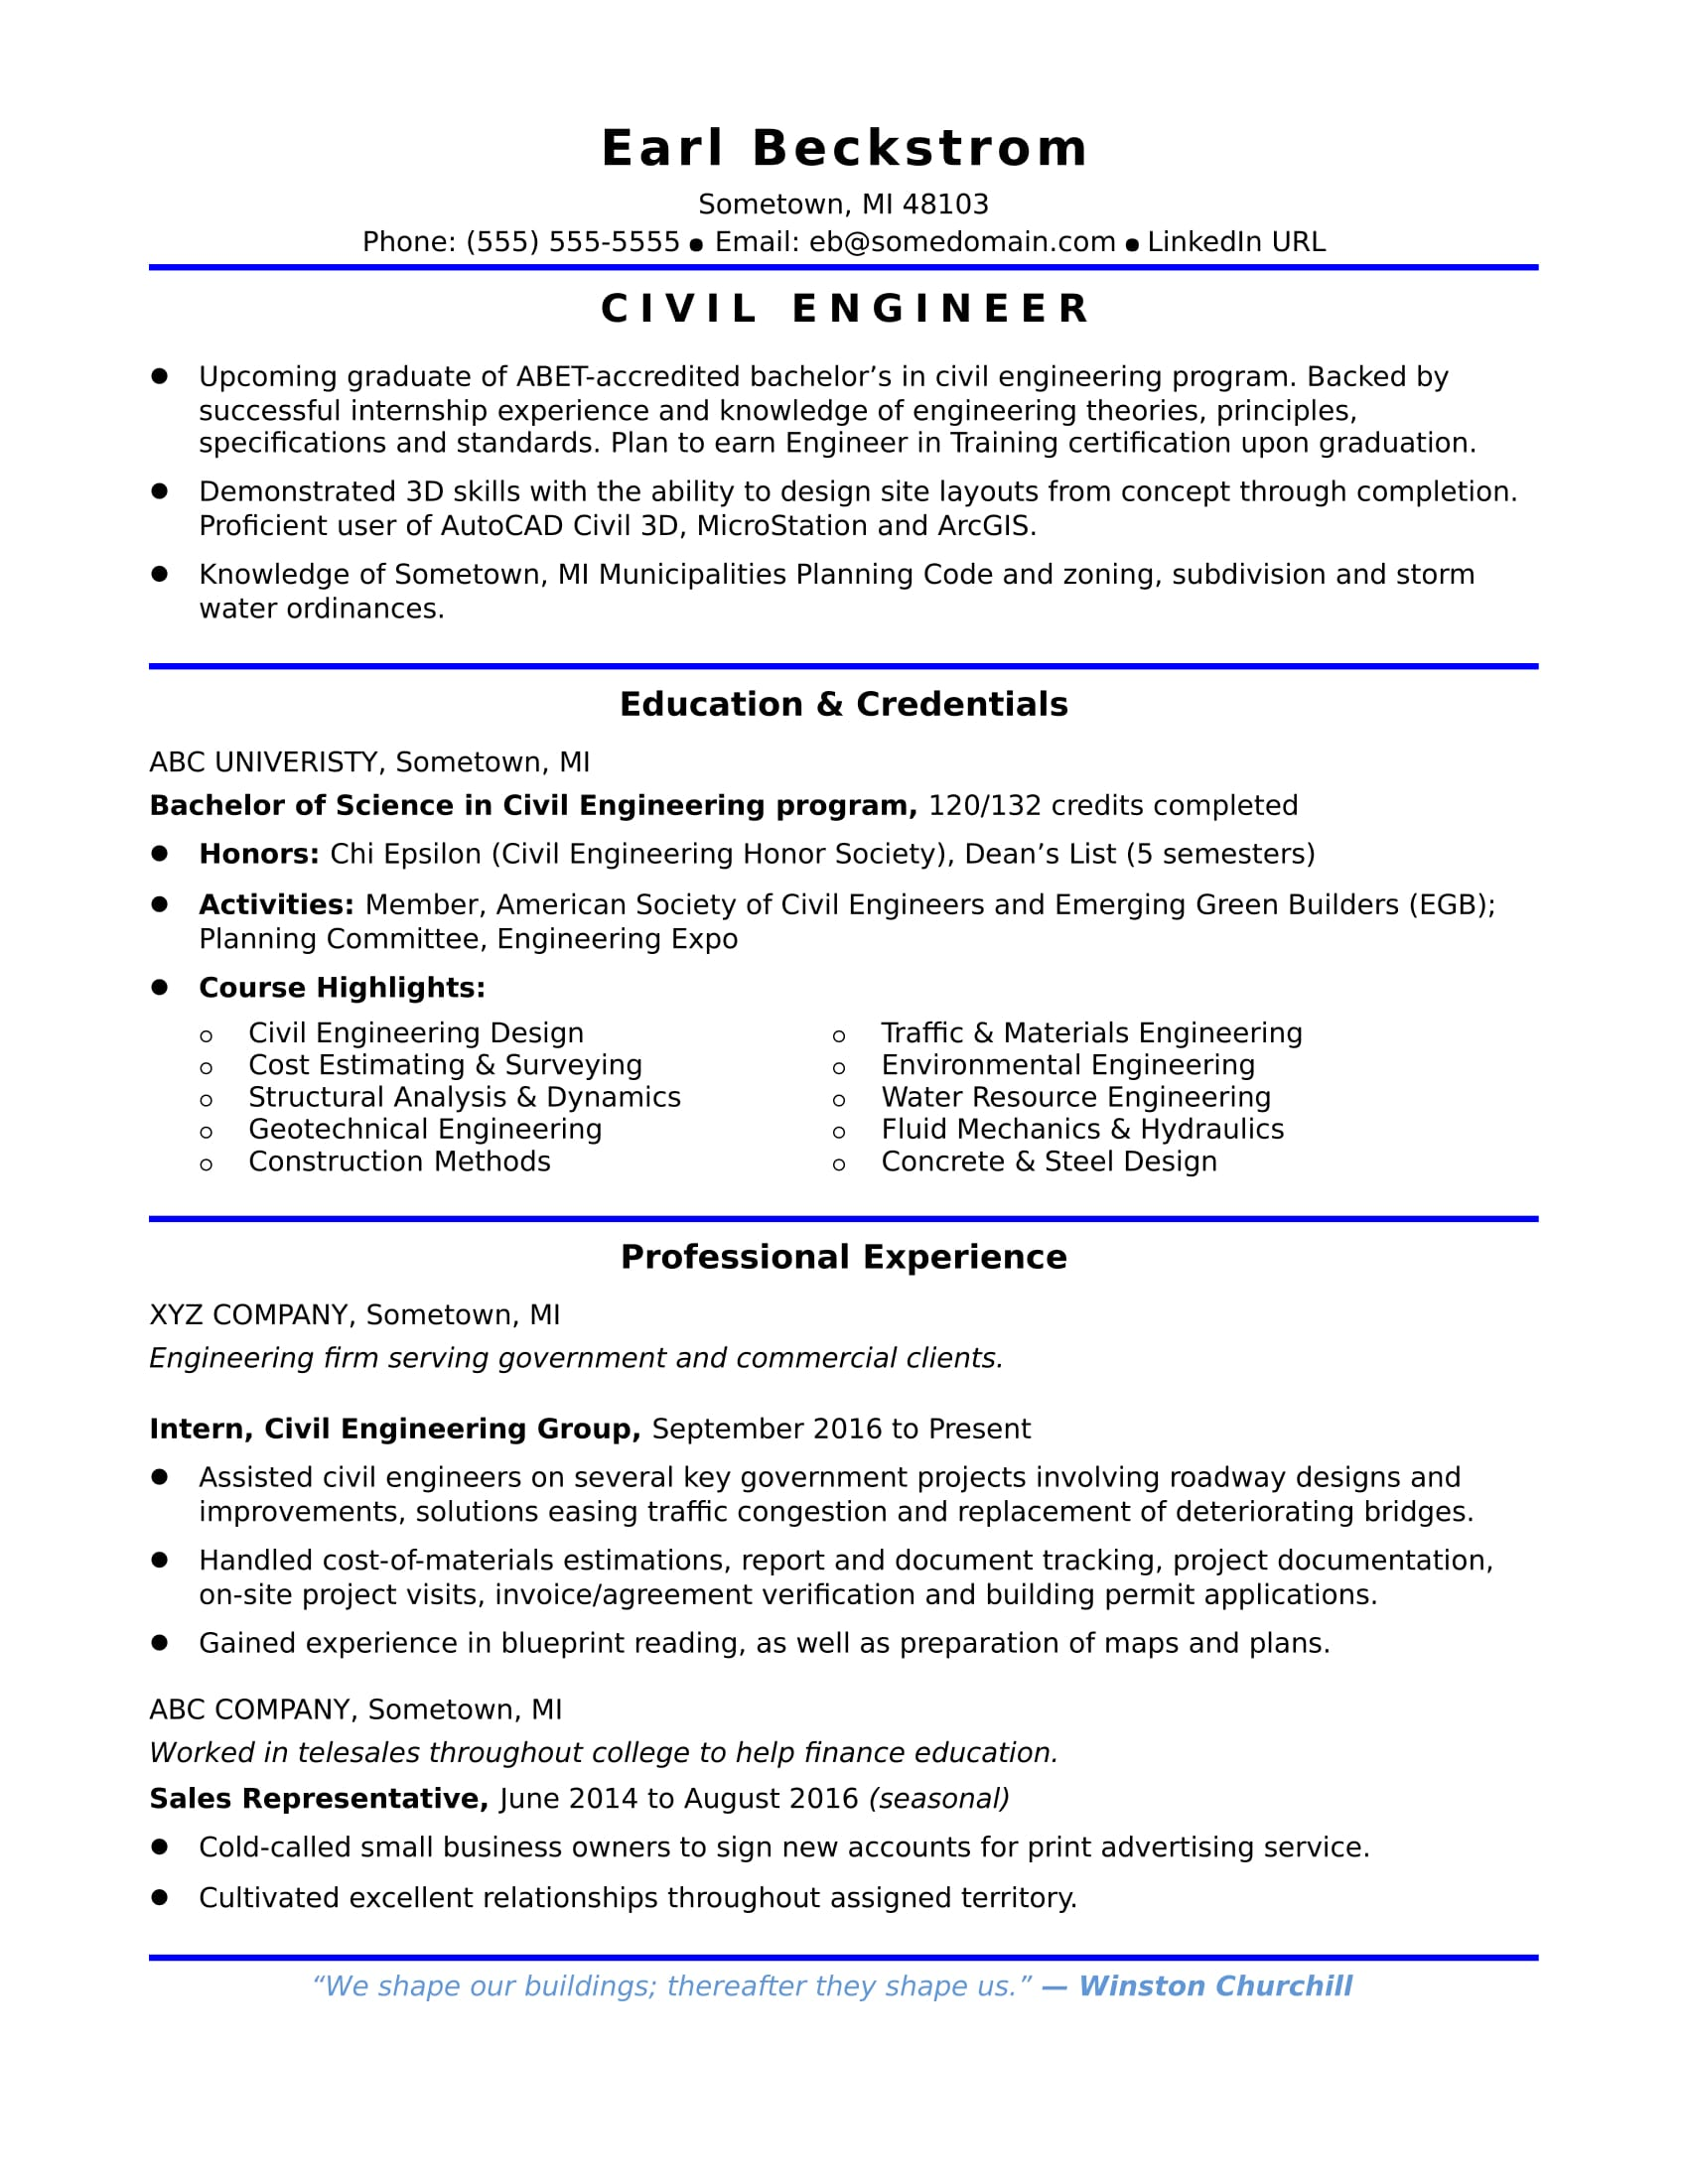 Sample resume for an entry level civil engineer monster sample resume for an entry level civil engineer malvernweather Image collections